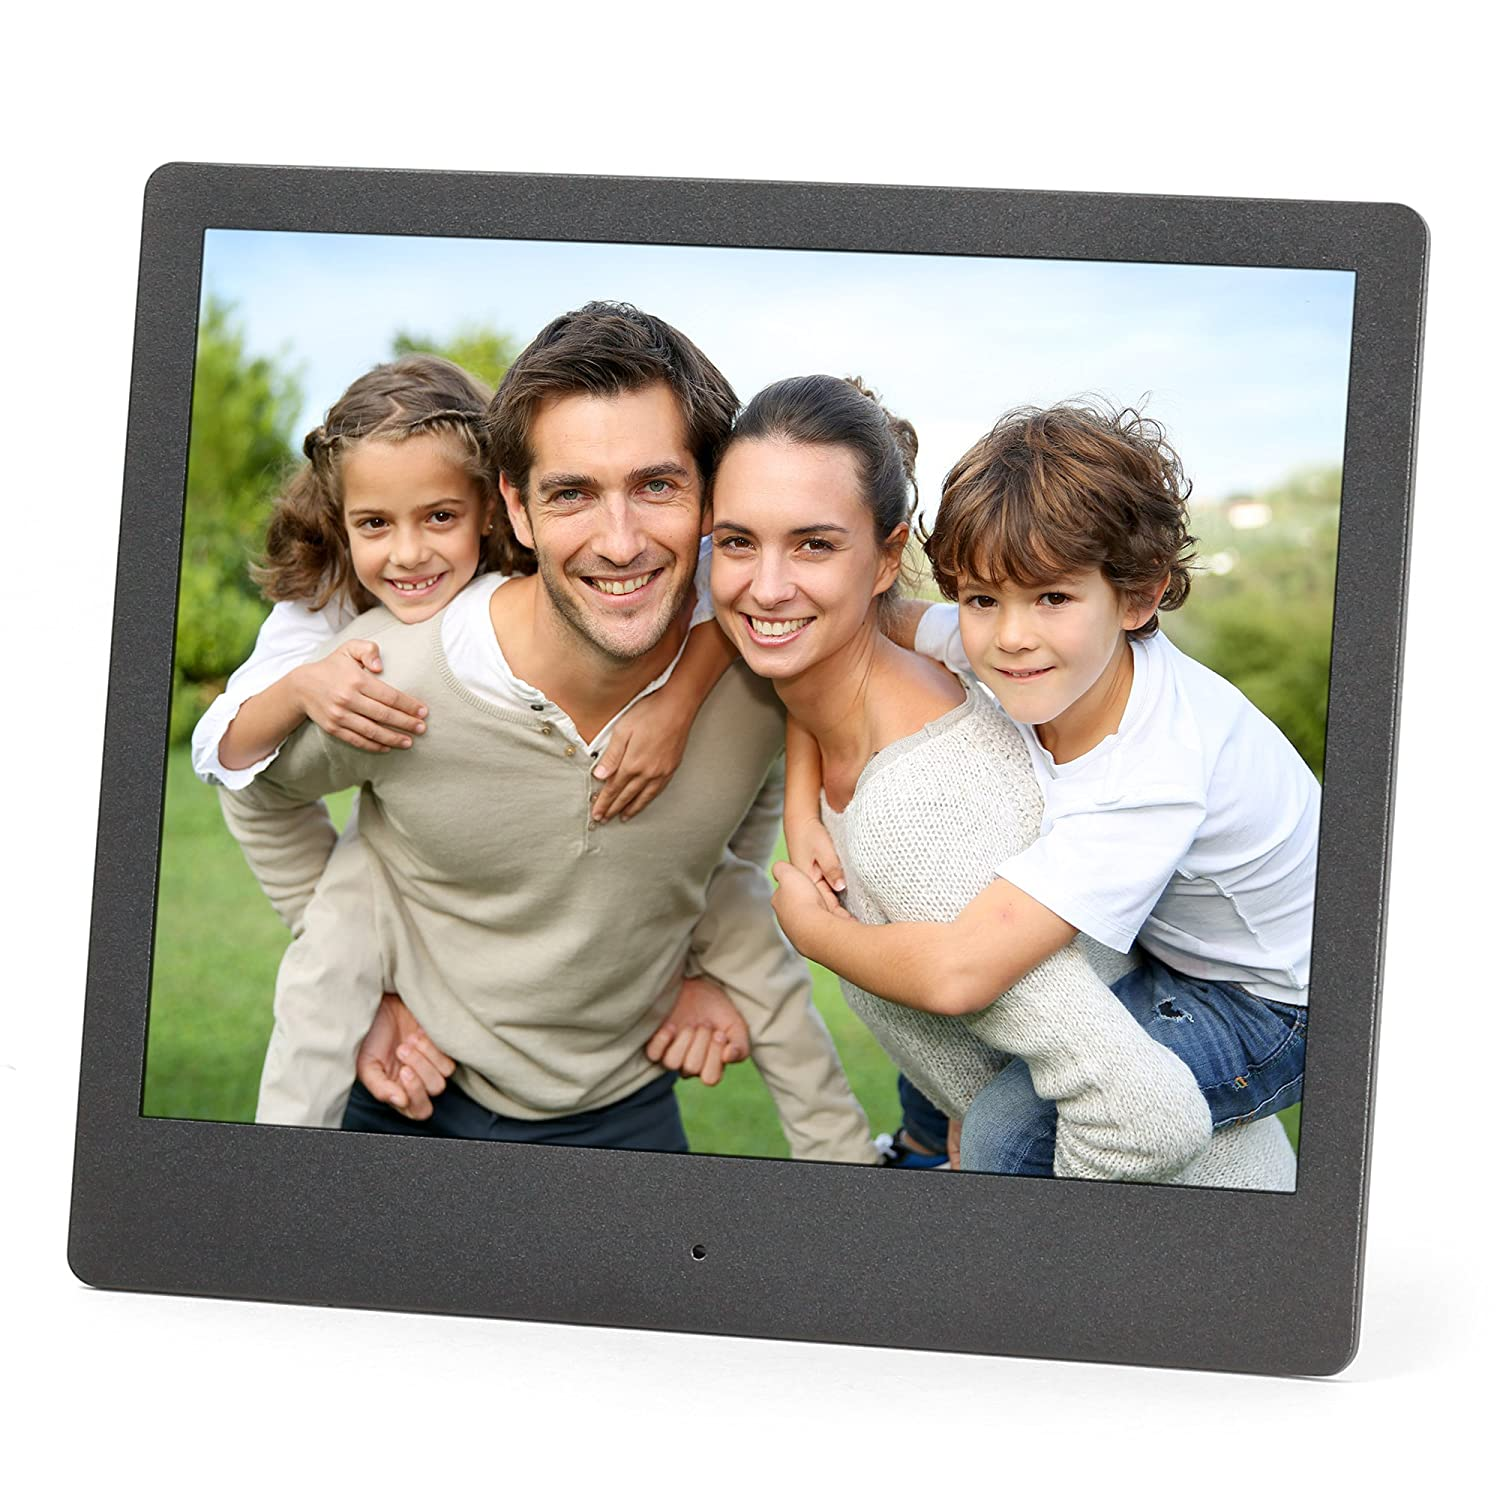 micca neo series 8 inch natural view digital photo frame with ultra slim design m803a